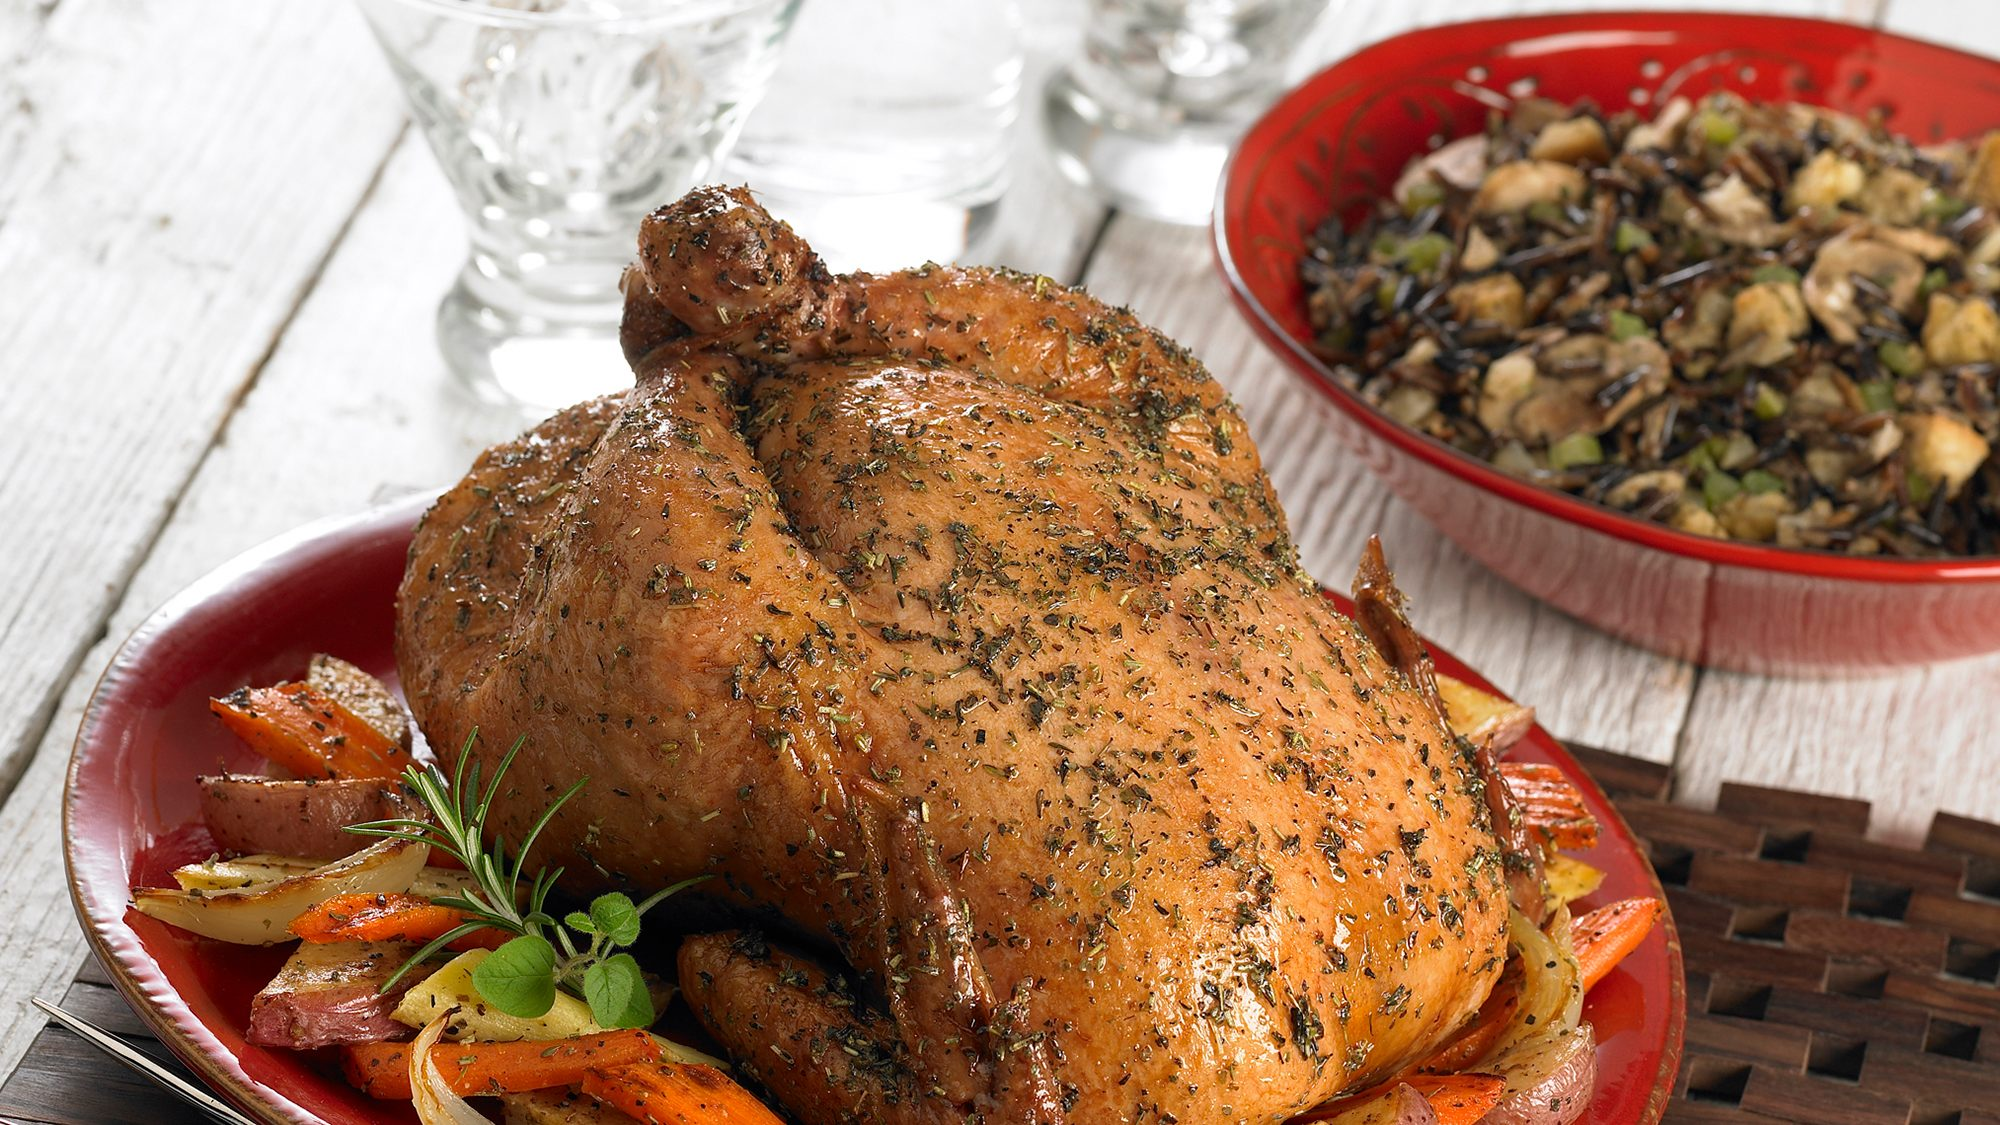 roasted-chicken-with-herbes-de-provence.jpg